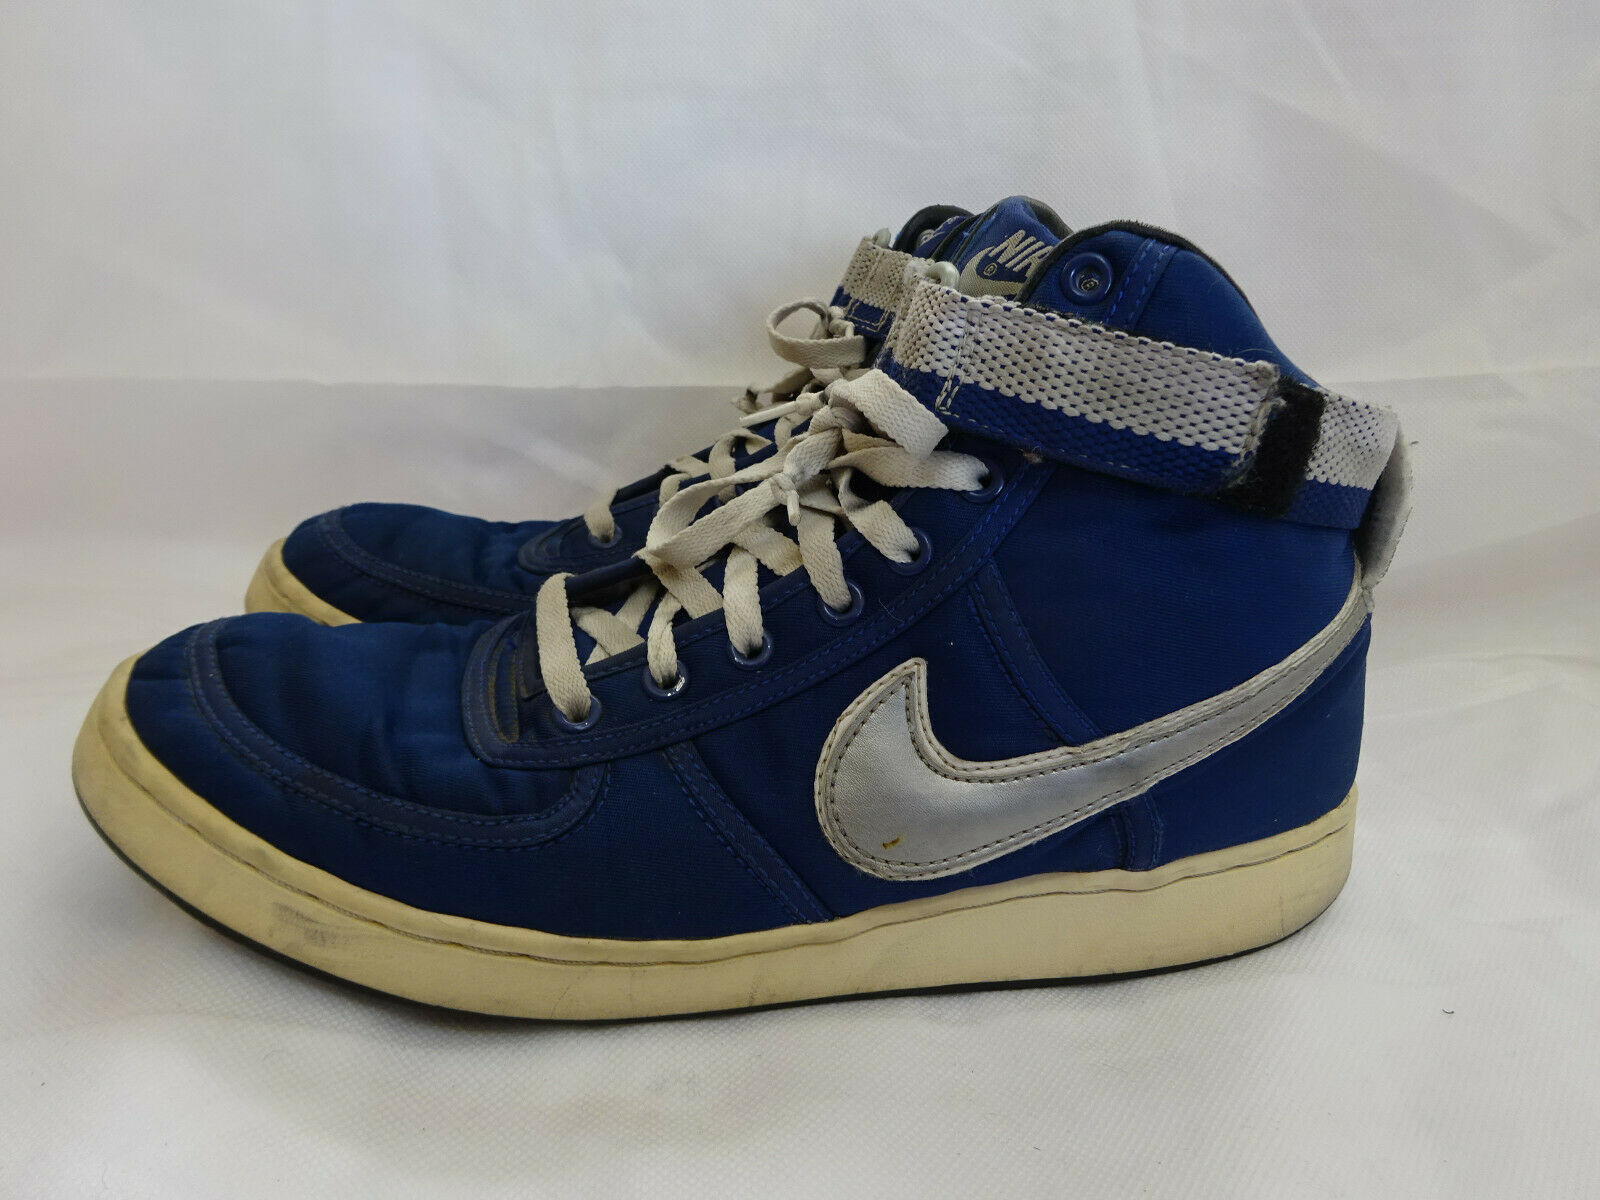 2002 Nike Dunk High -  bluee Silver - Mens size 10.5